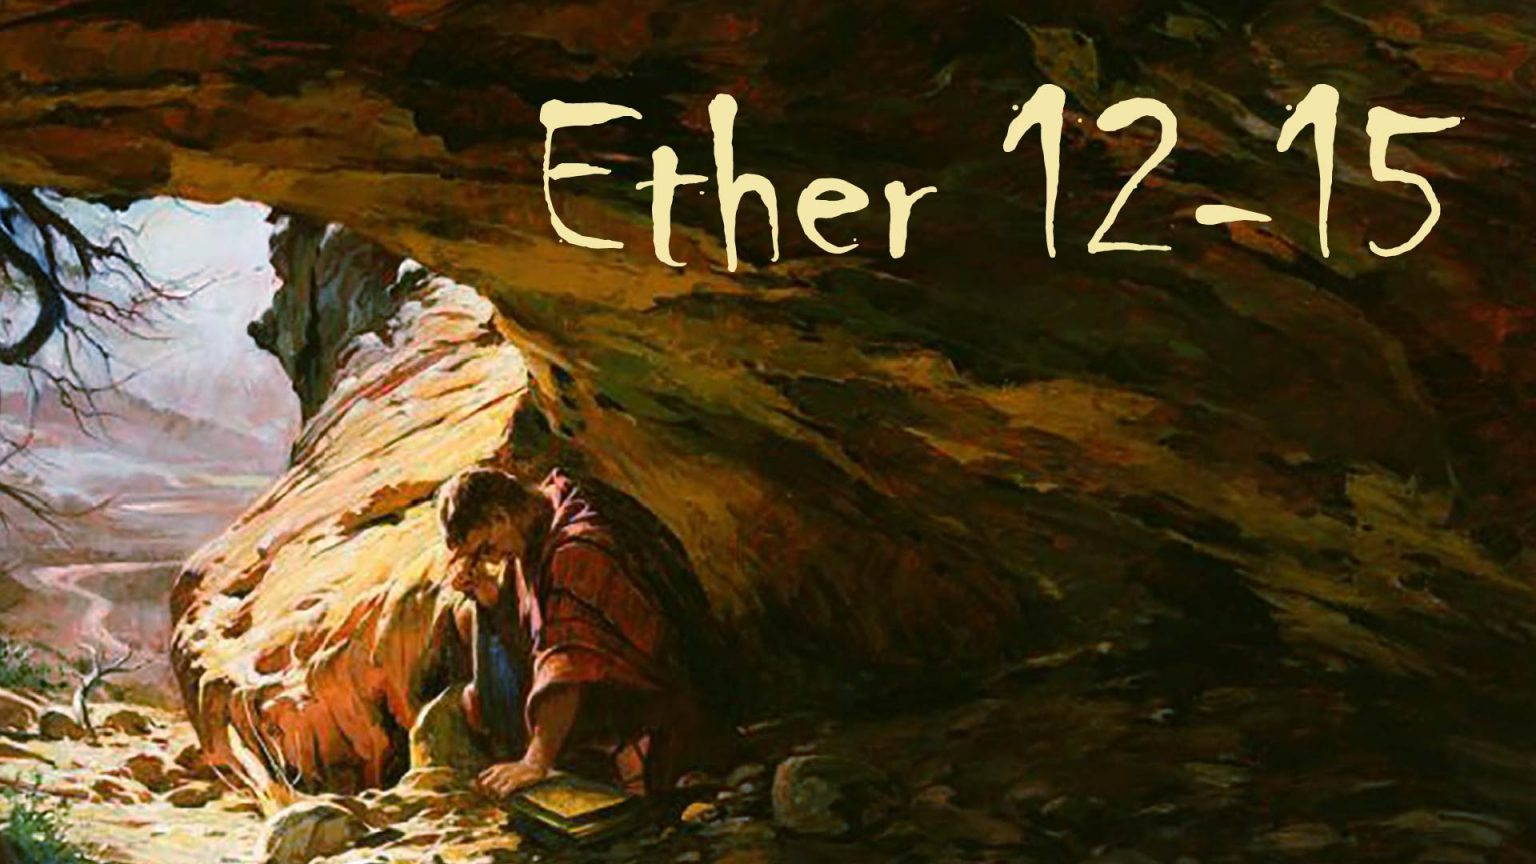 Ether 12-15